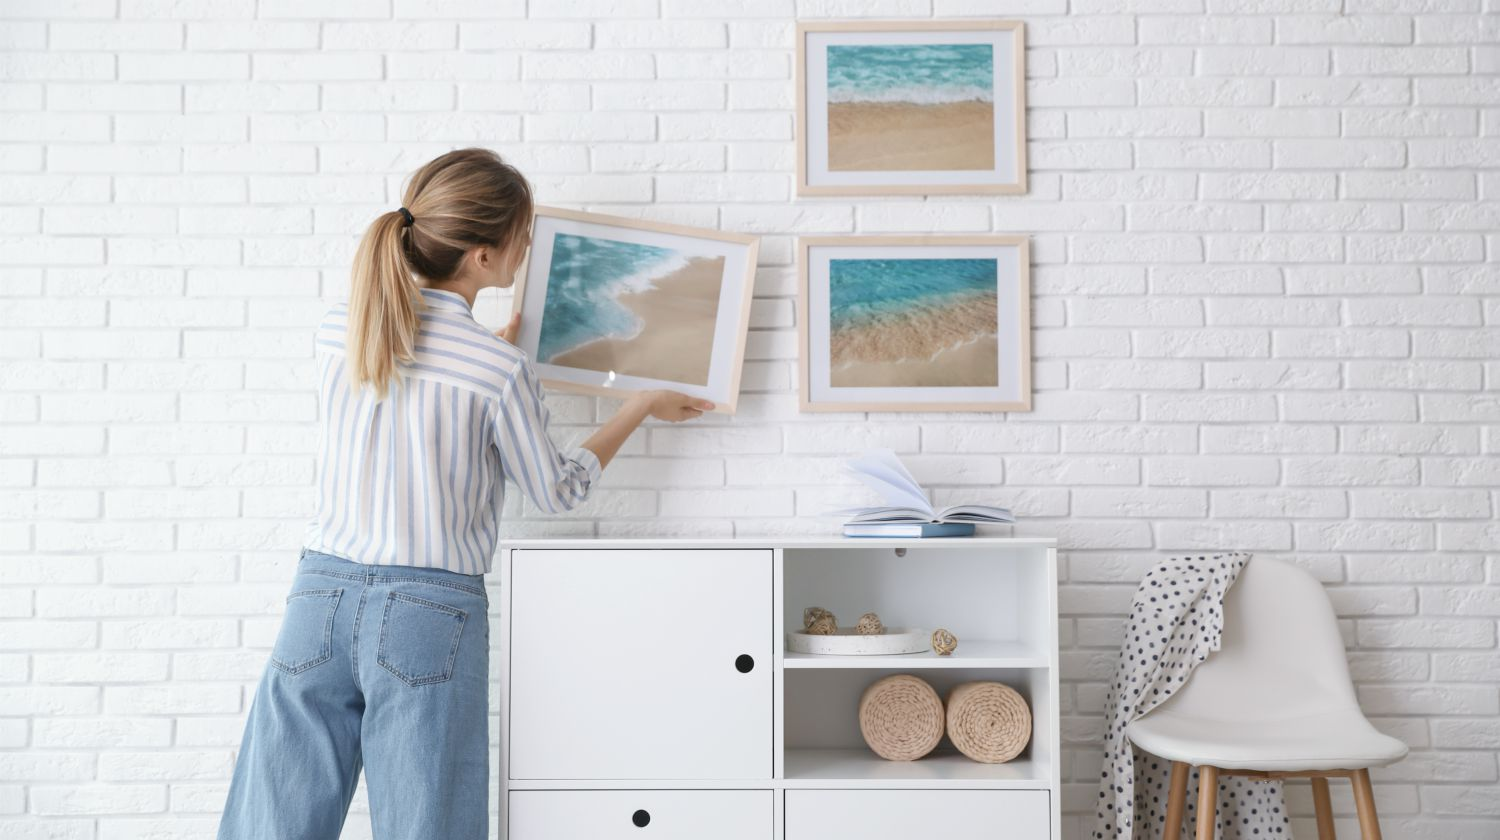 20 Cool Home Decor Wall Art Ideas For You To Craft Diy Projects